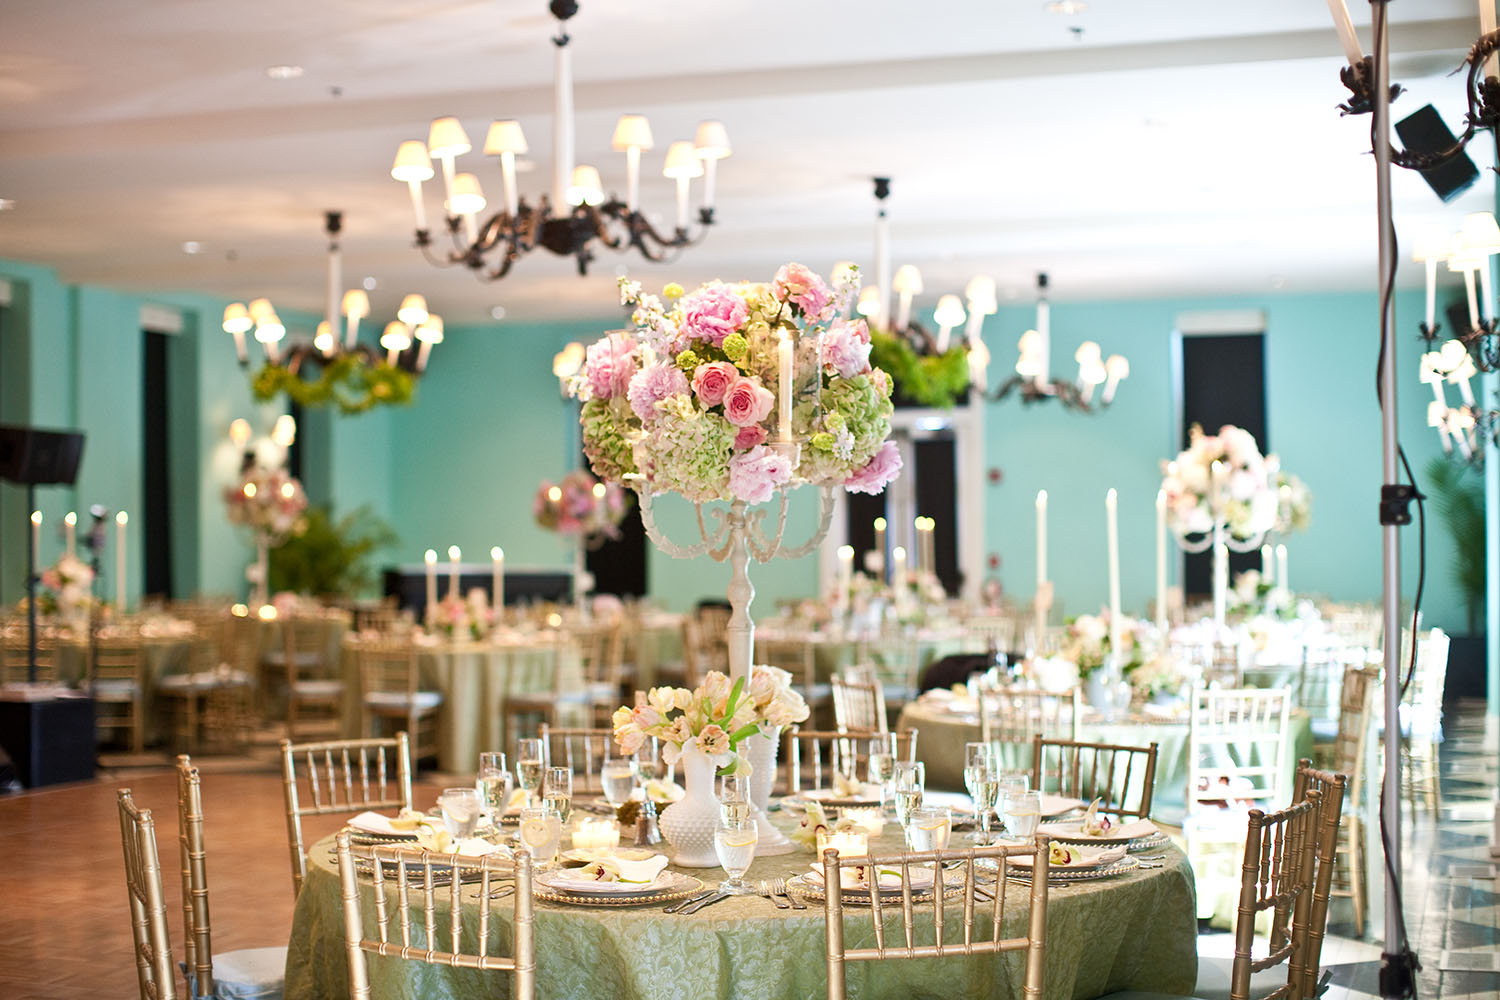 Laura Novak Photography   |  Wedding Reception  |  Congress Hall, Cape May, NJ